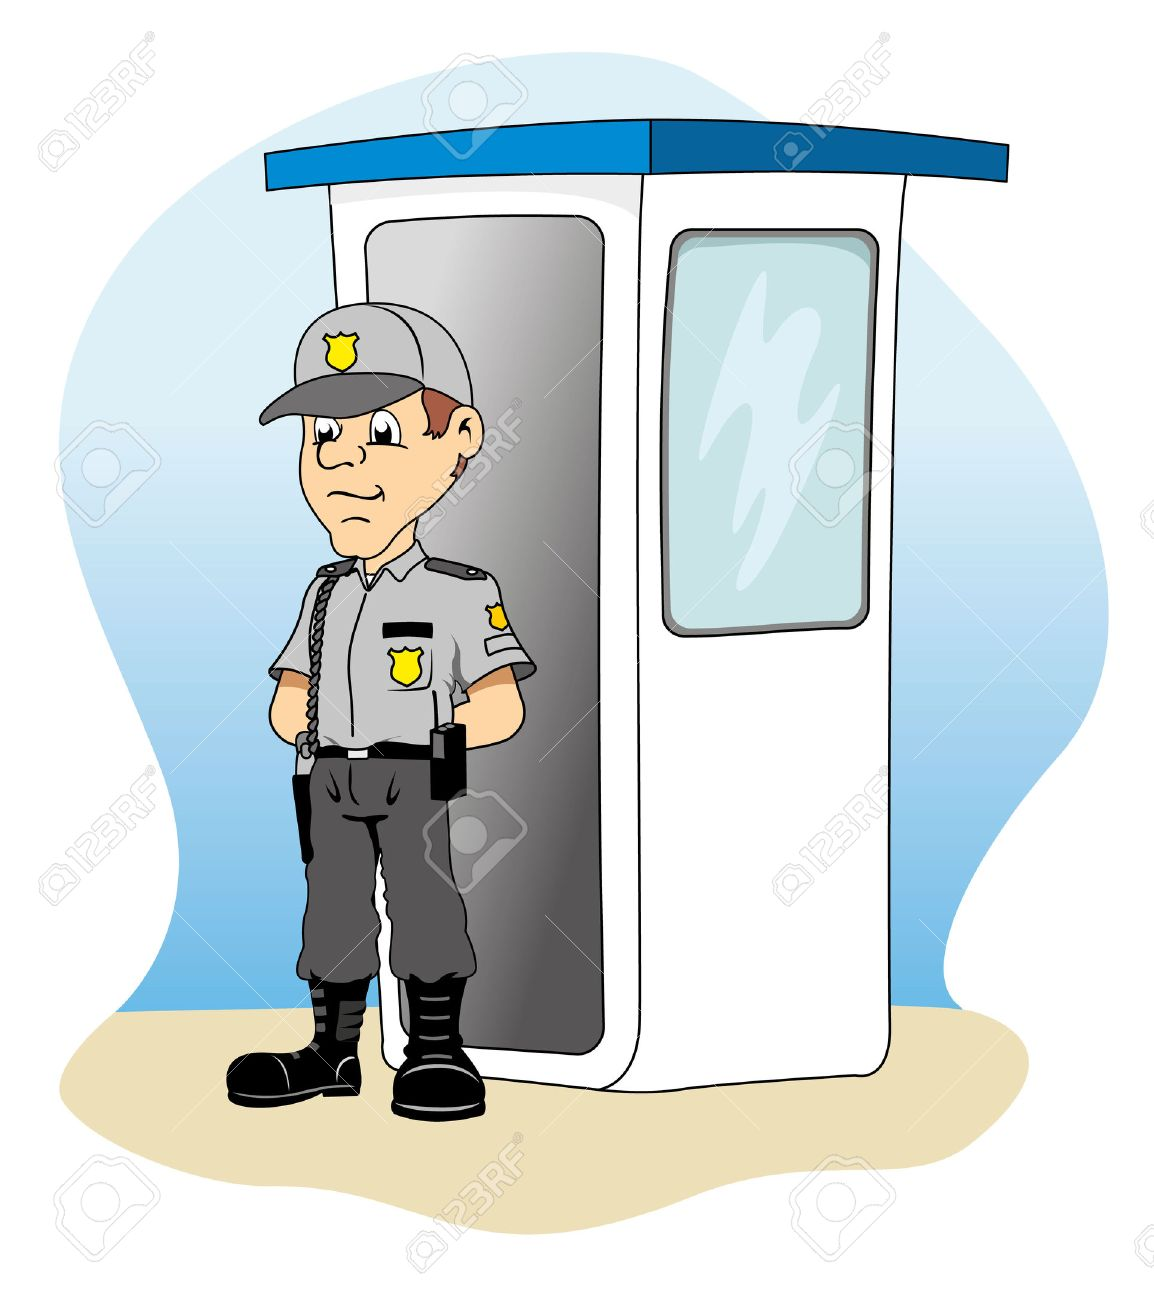 job security in a guardhouse standing guard ideal for training job security in a guardhouse standing guard ideal for training material and institutional stock